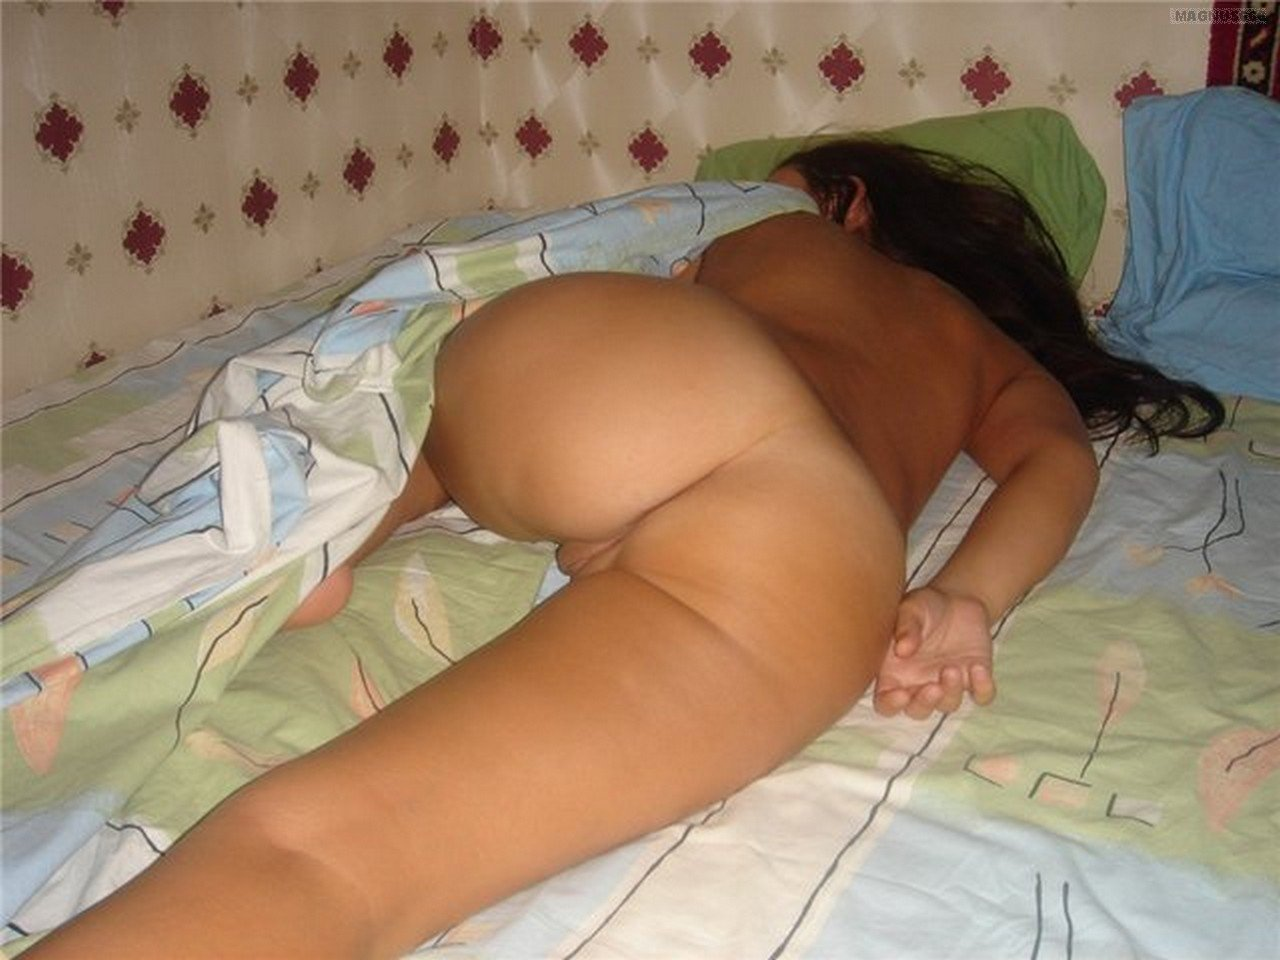 sleeping naked women pics